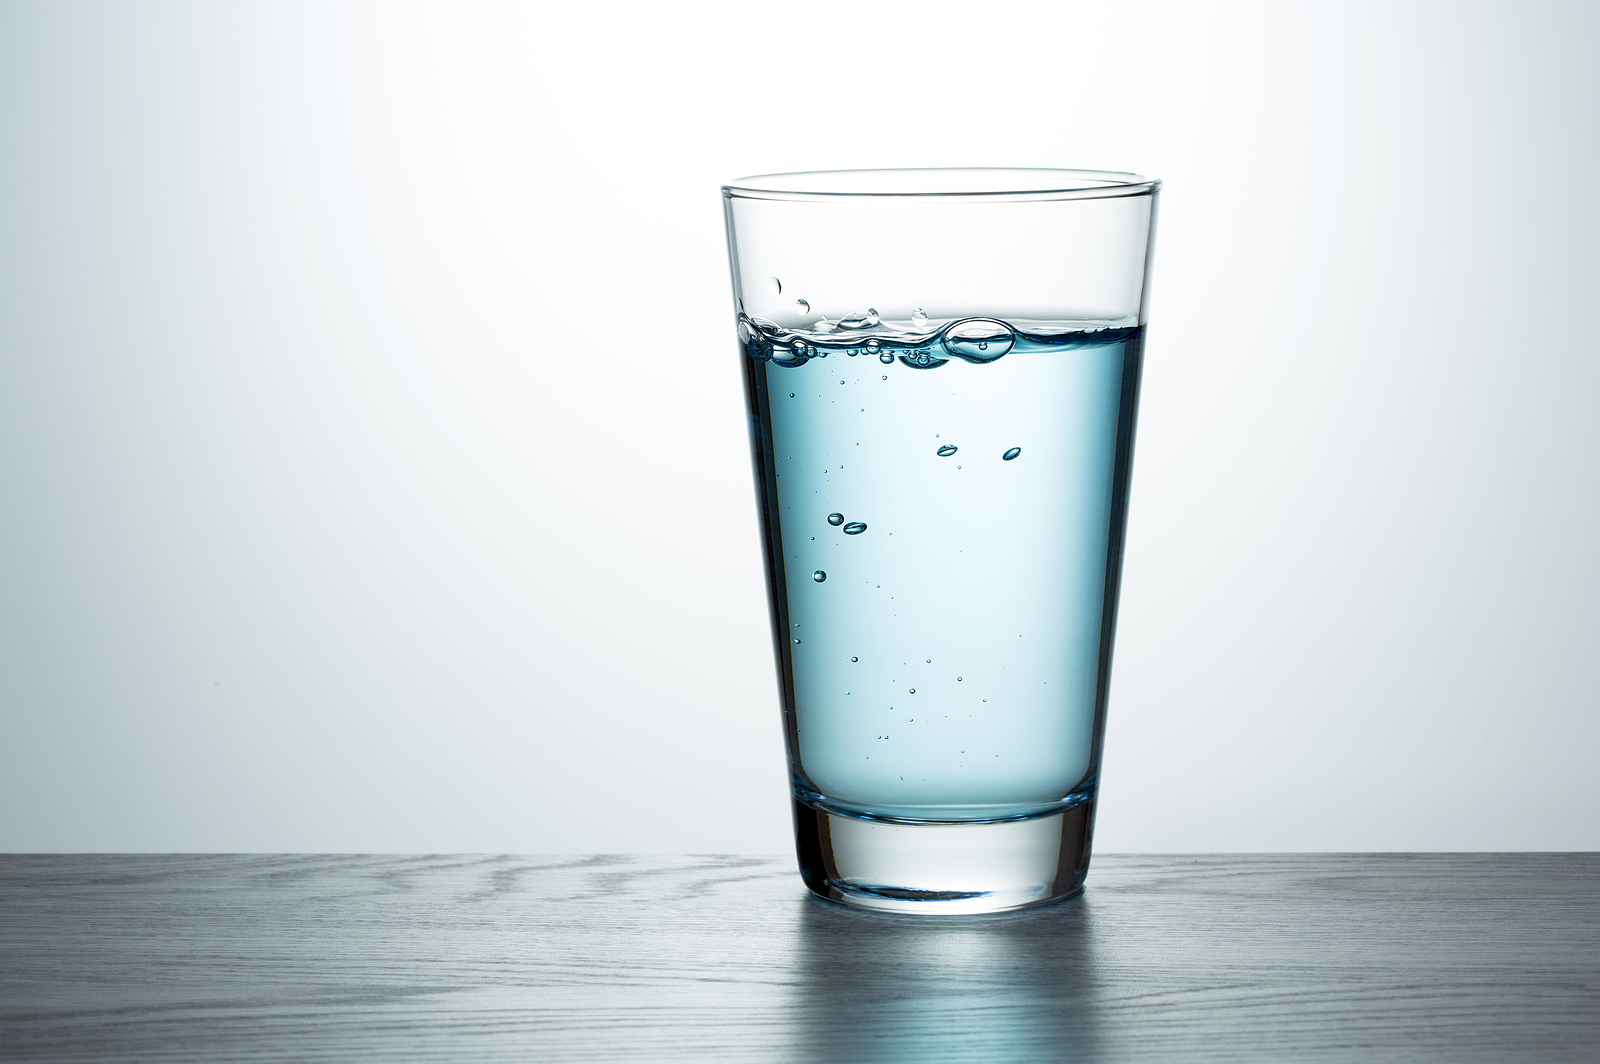 Glass of water on a desk